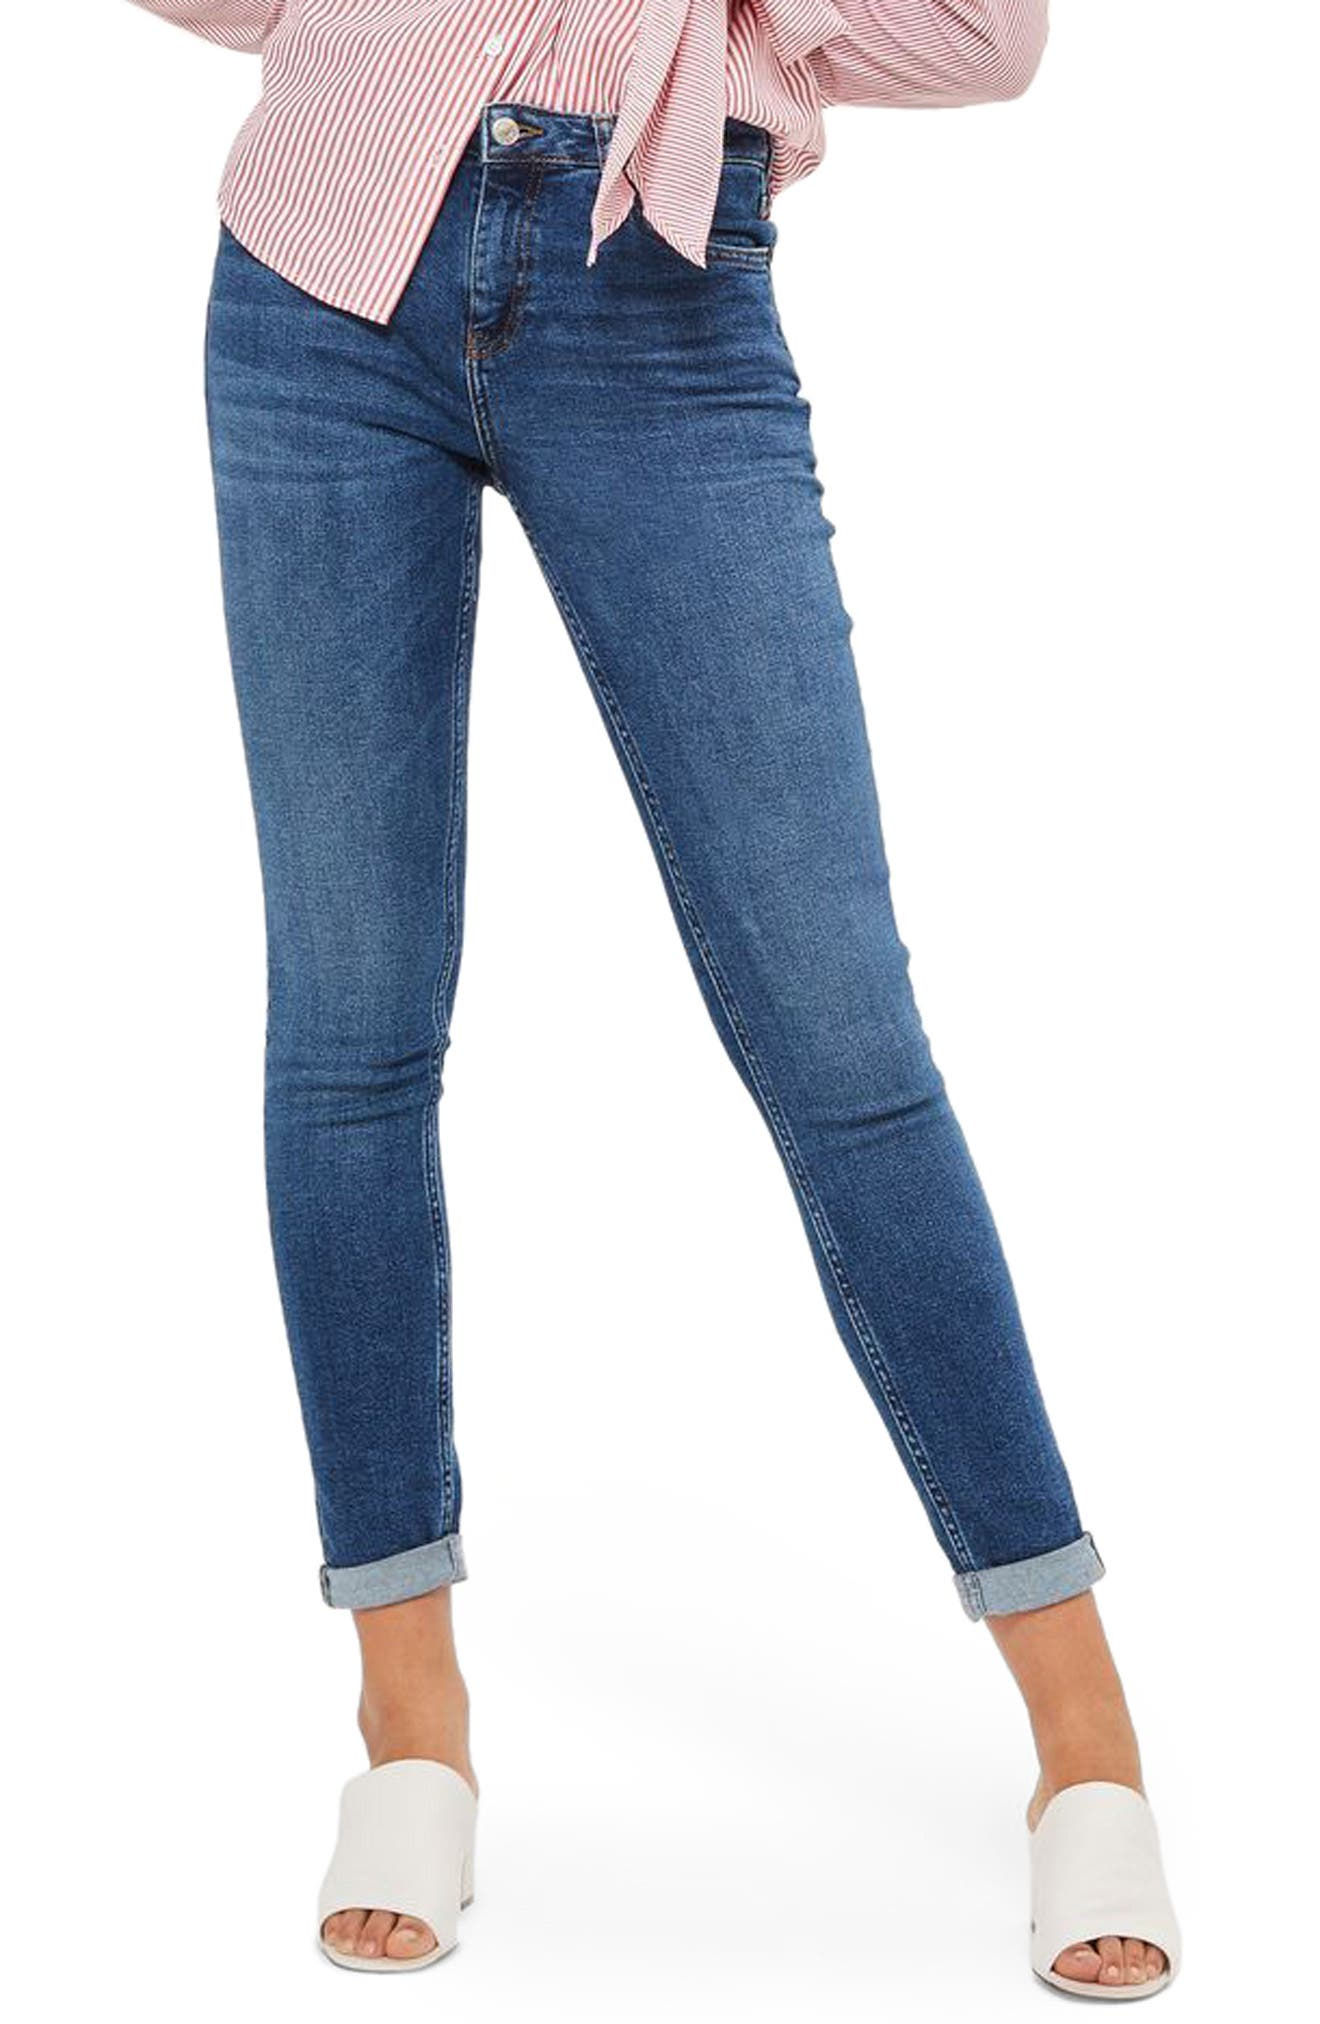 Lucas Relaxed Fit Jeans,                         Main,                         color, 400